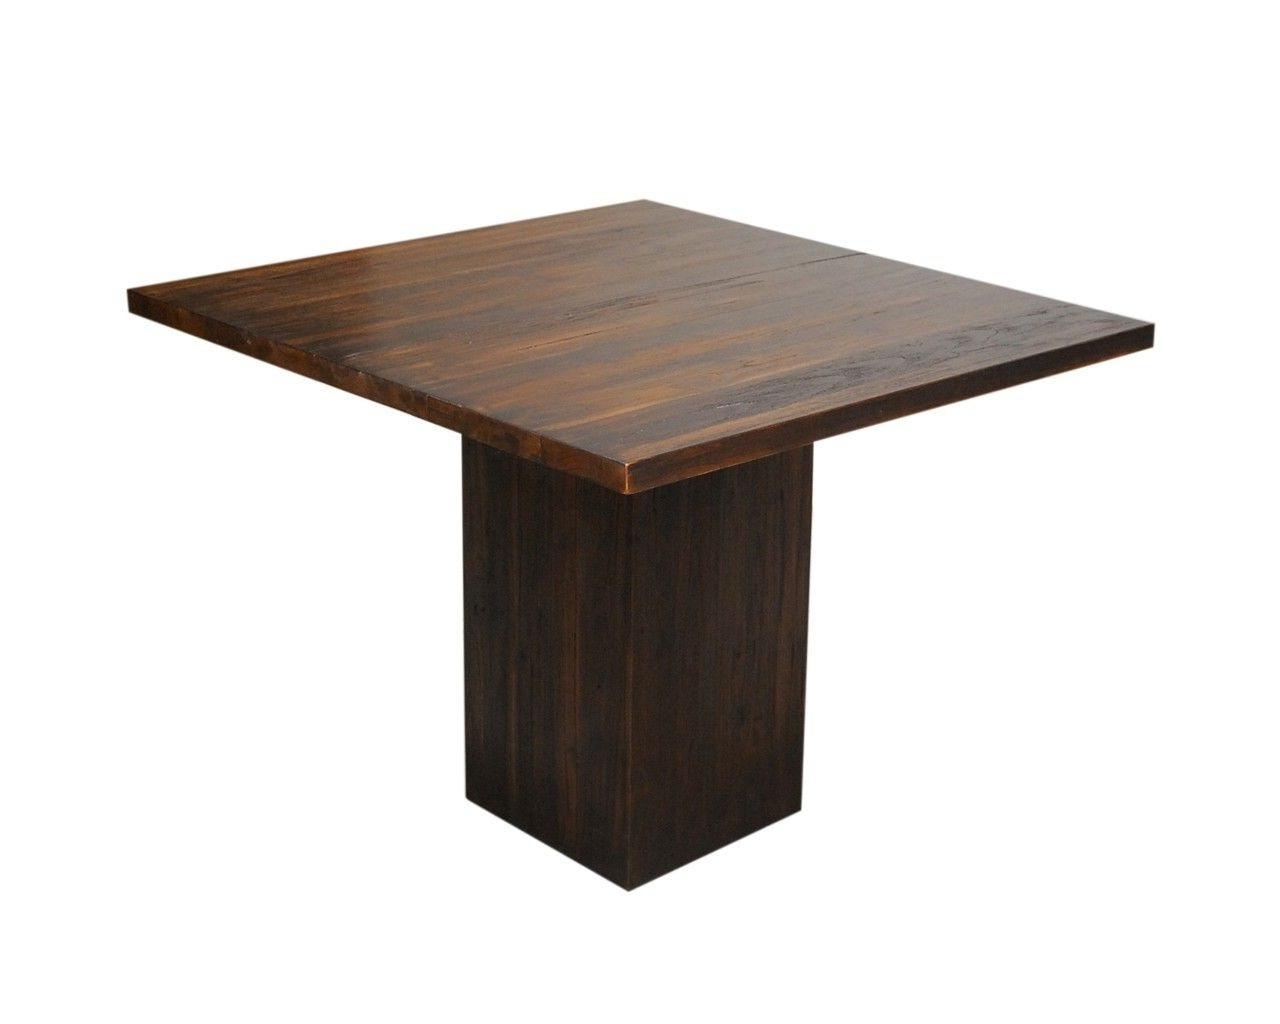 Dark Wood Square Dining Tables Pertaining To Latest Dining Room : Dark Wood Square Table Contemporary Teak Dining Tables (Gallery 2 of 25)